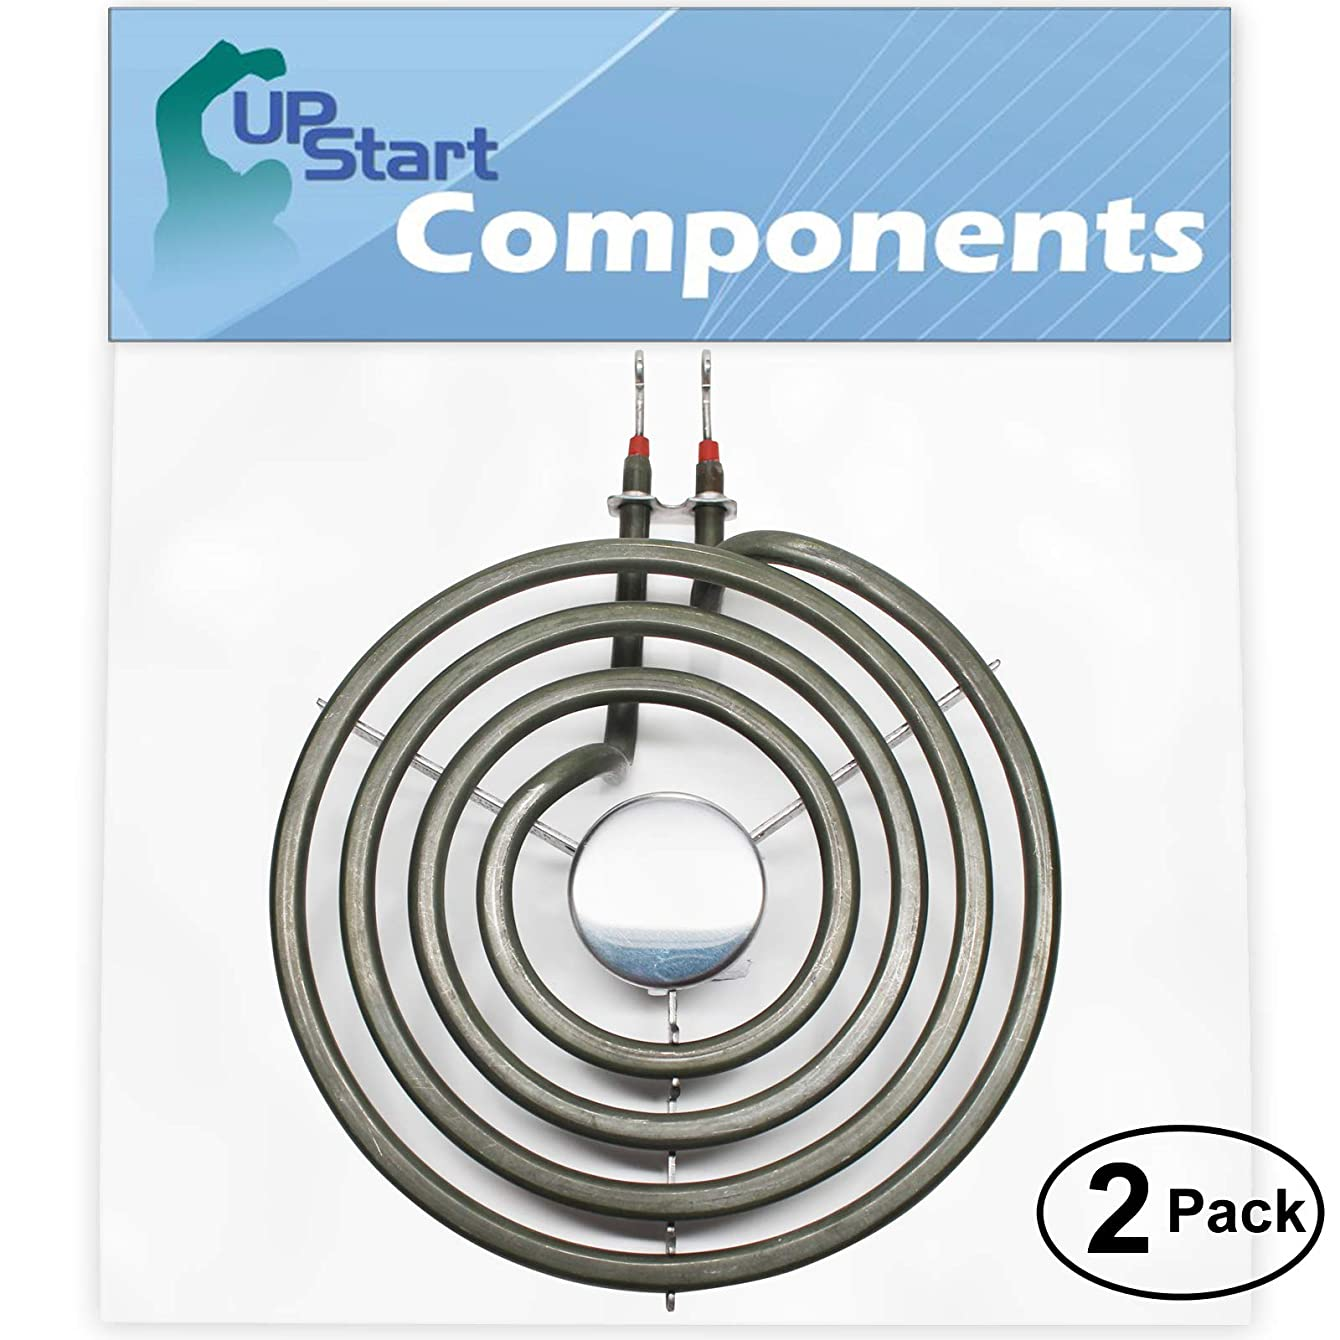 2-Pack Replacement Whirlpool RM978BXVN0 6 inch 4 Turns Surface Burner Element - Compatible Whirlpool 660532 Heating Element for Range, Stove & Cooktop